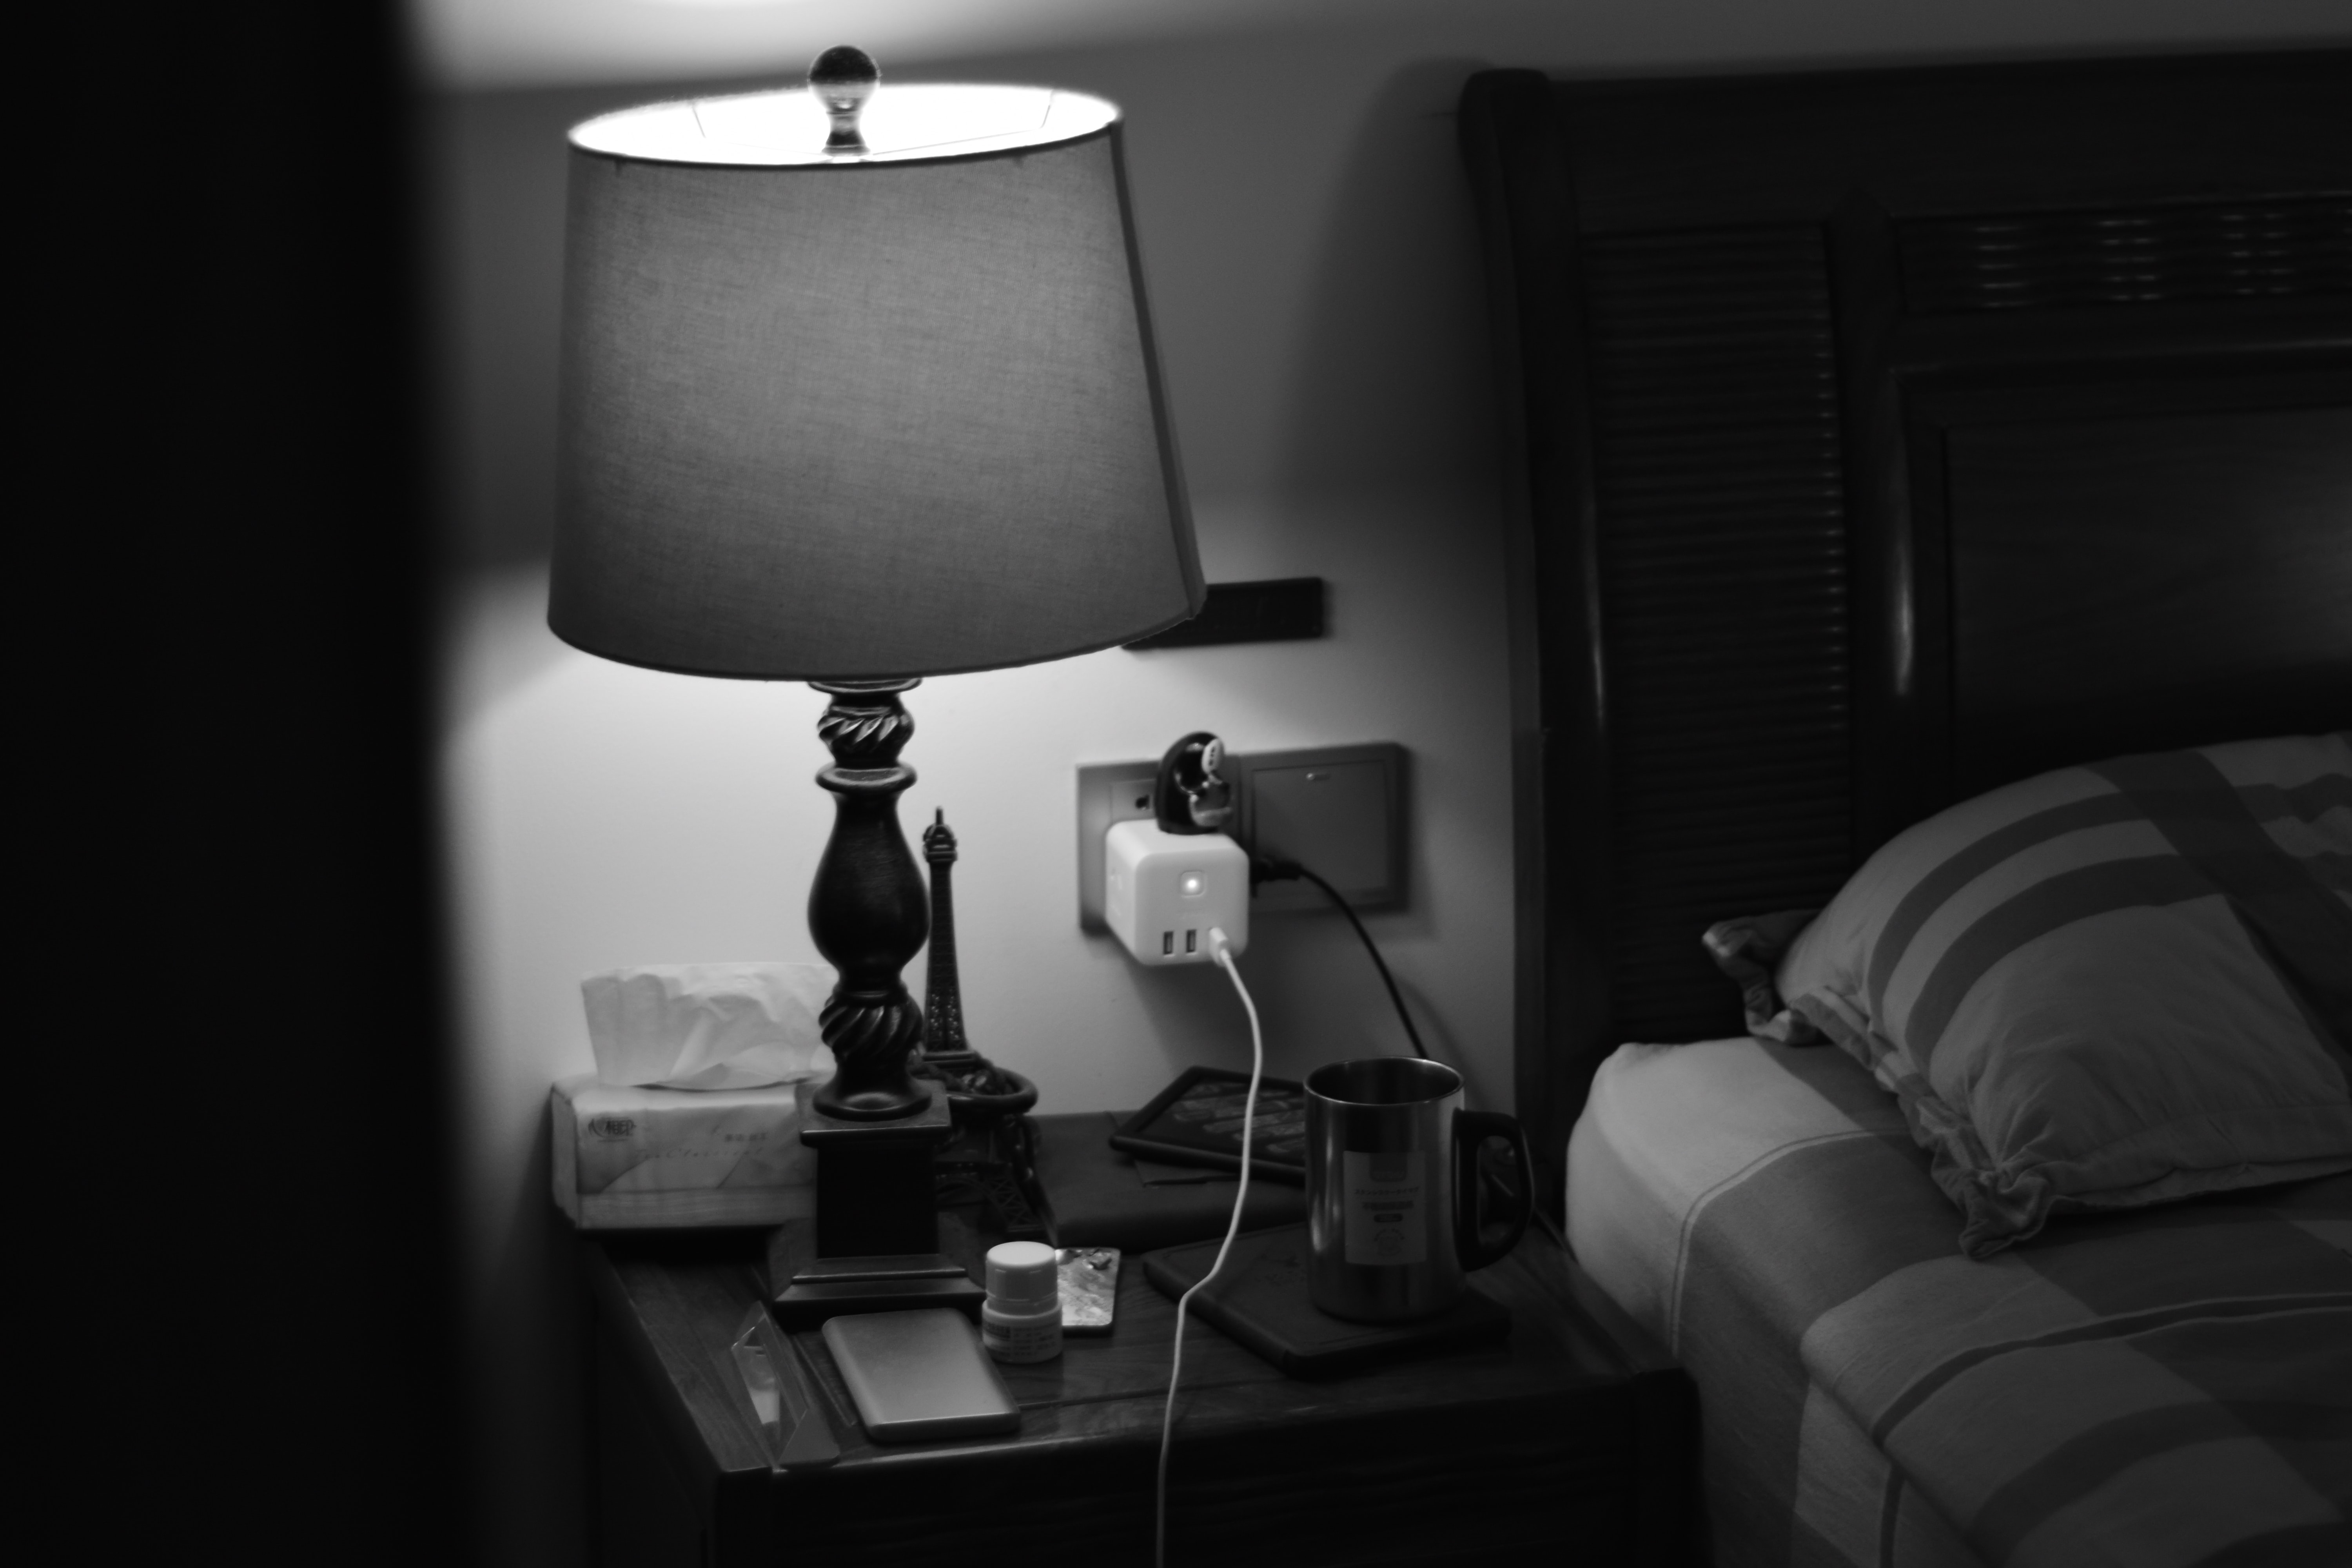 grayscale photo of table lamp near bead